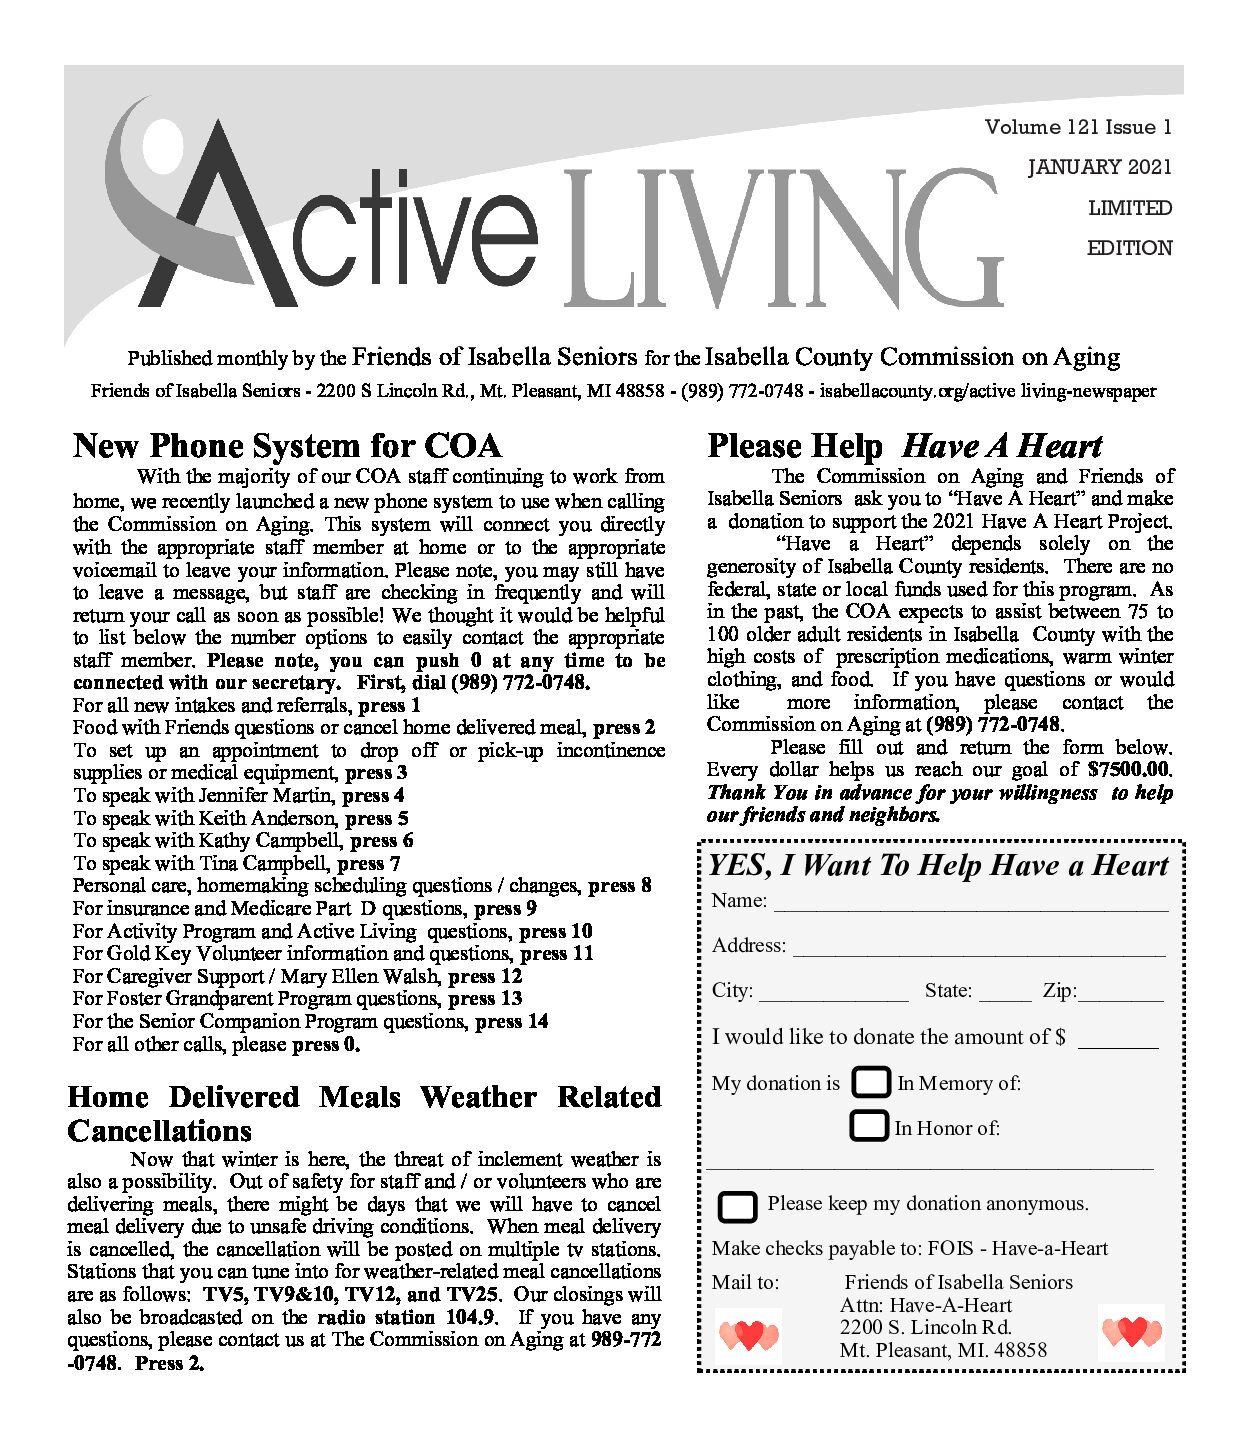 preview image of first page January 2021 Active Living